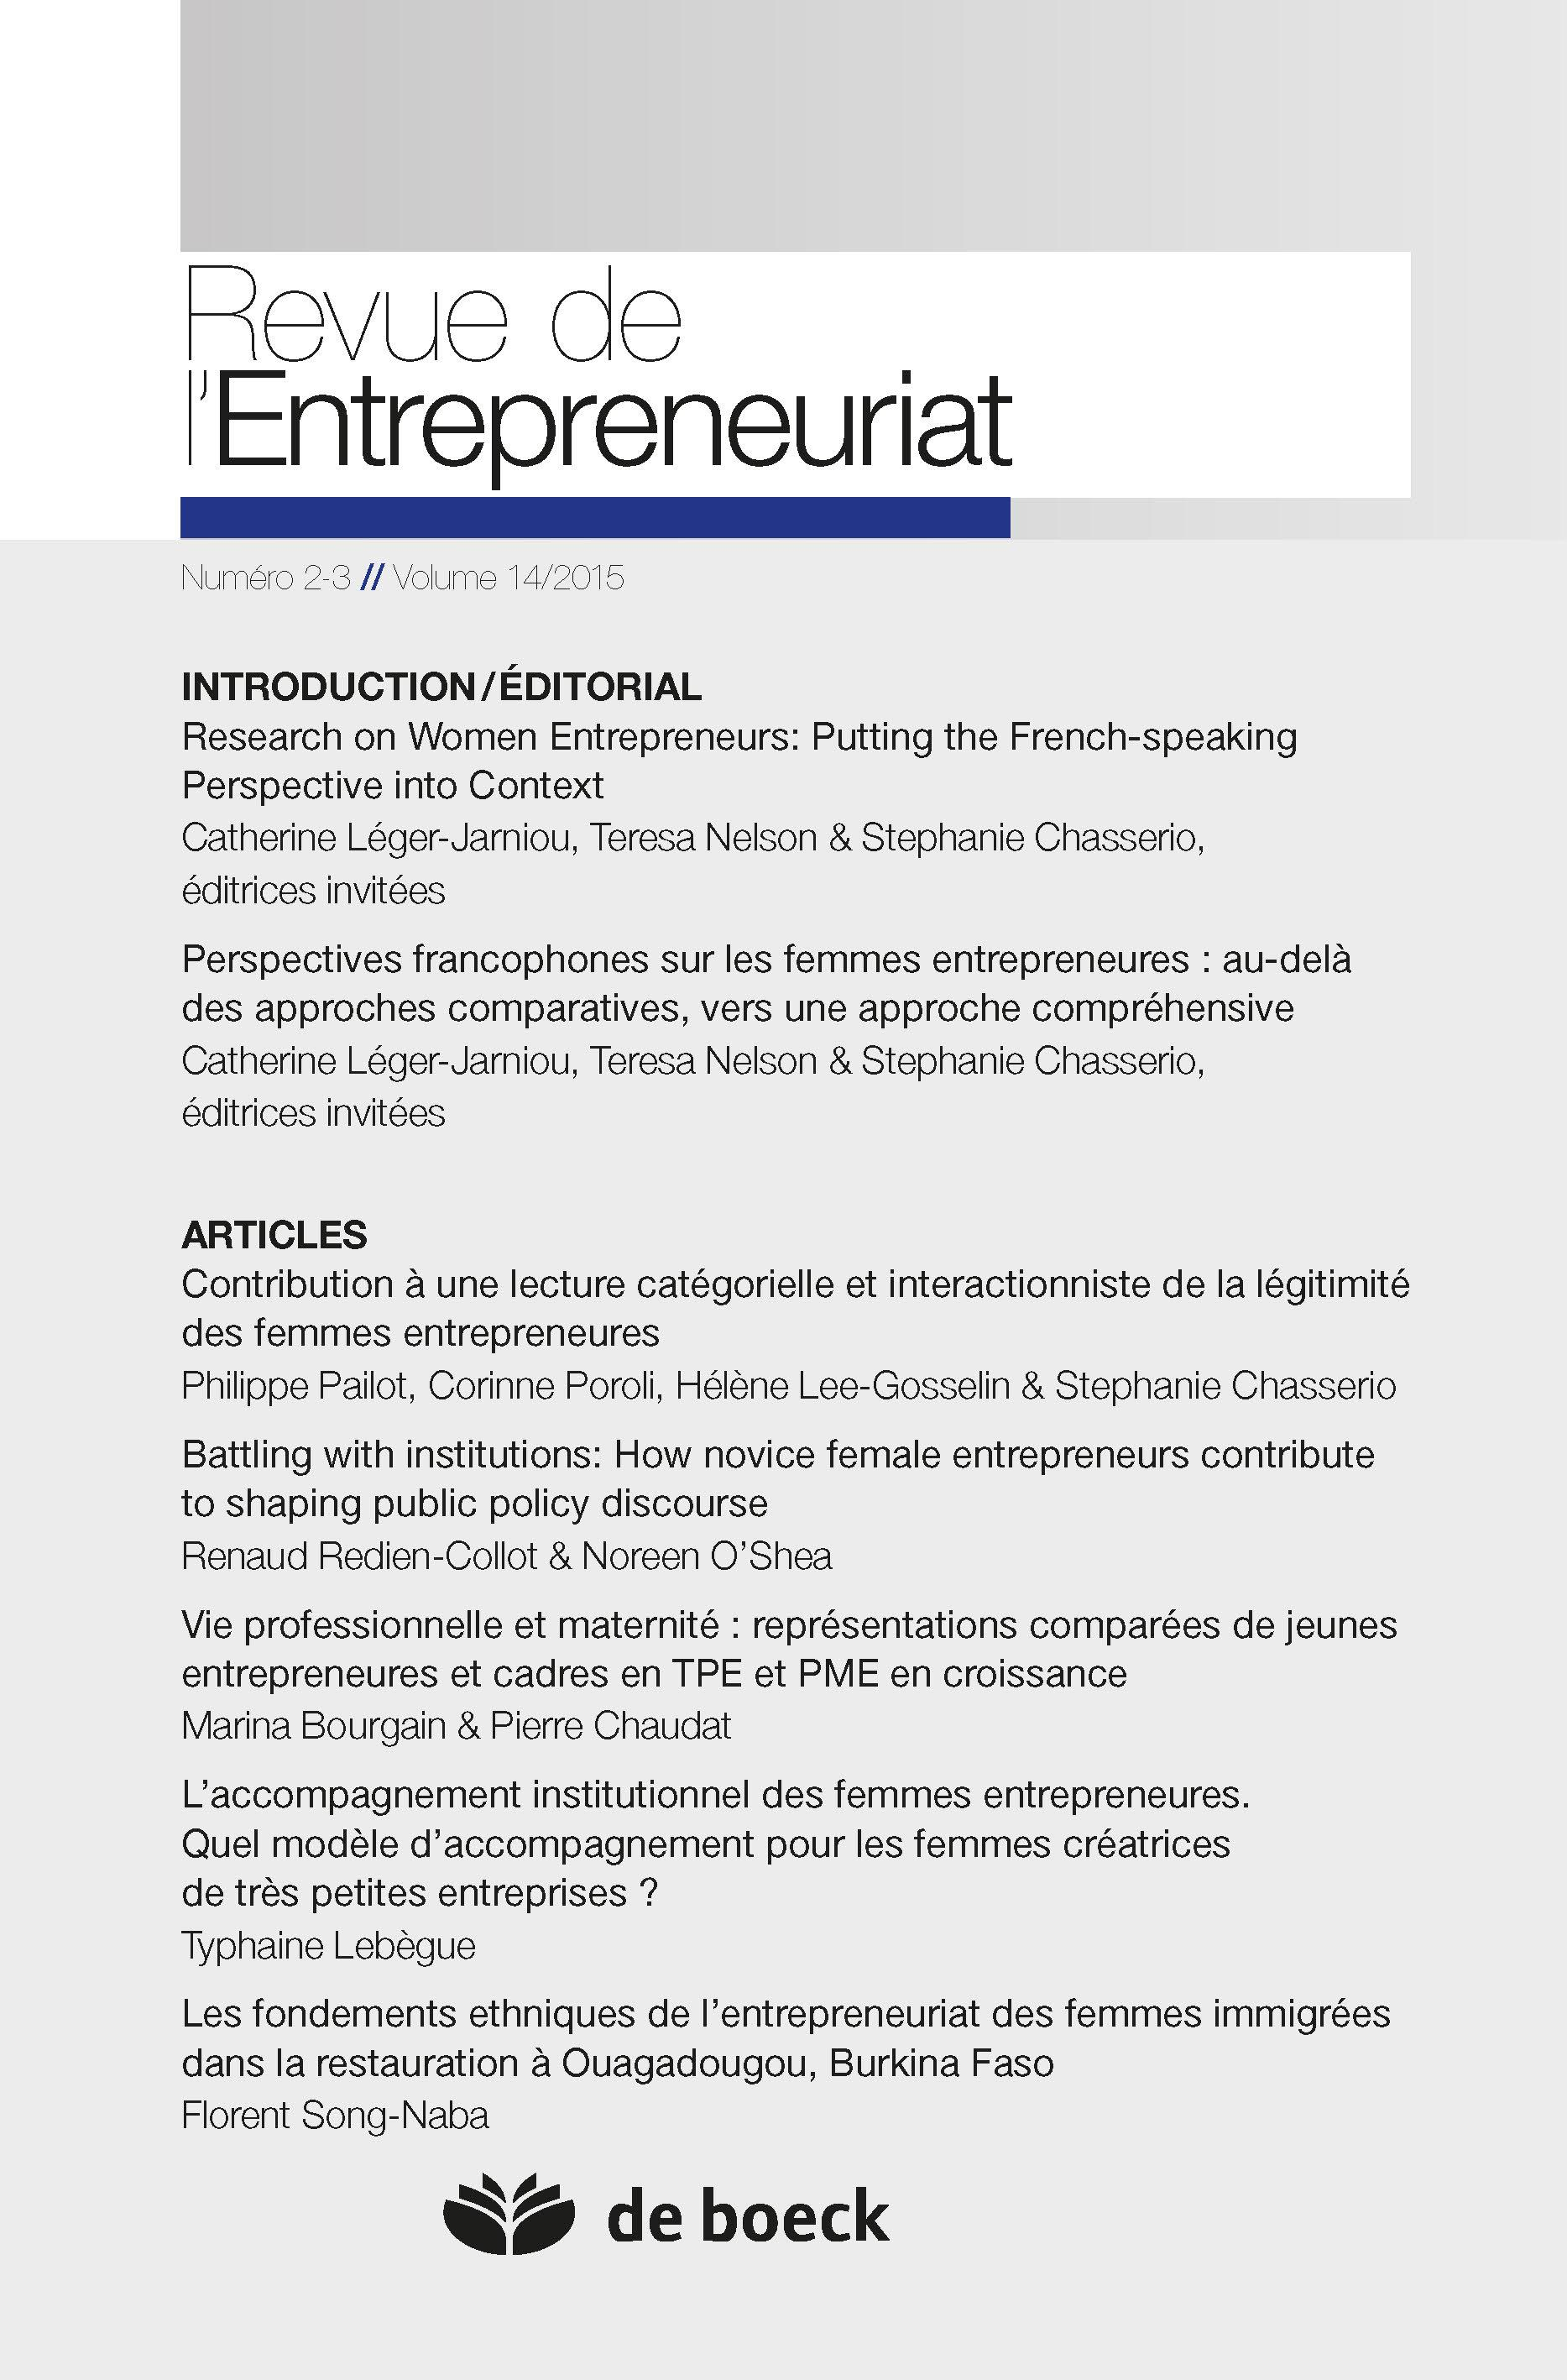 Women's Entrepreneurship and Economics: New Perspectives, Practices, and Policies